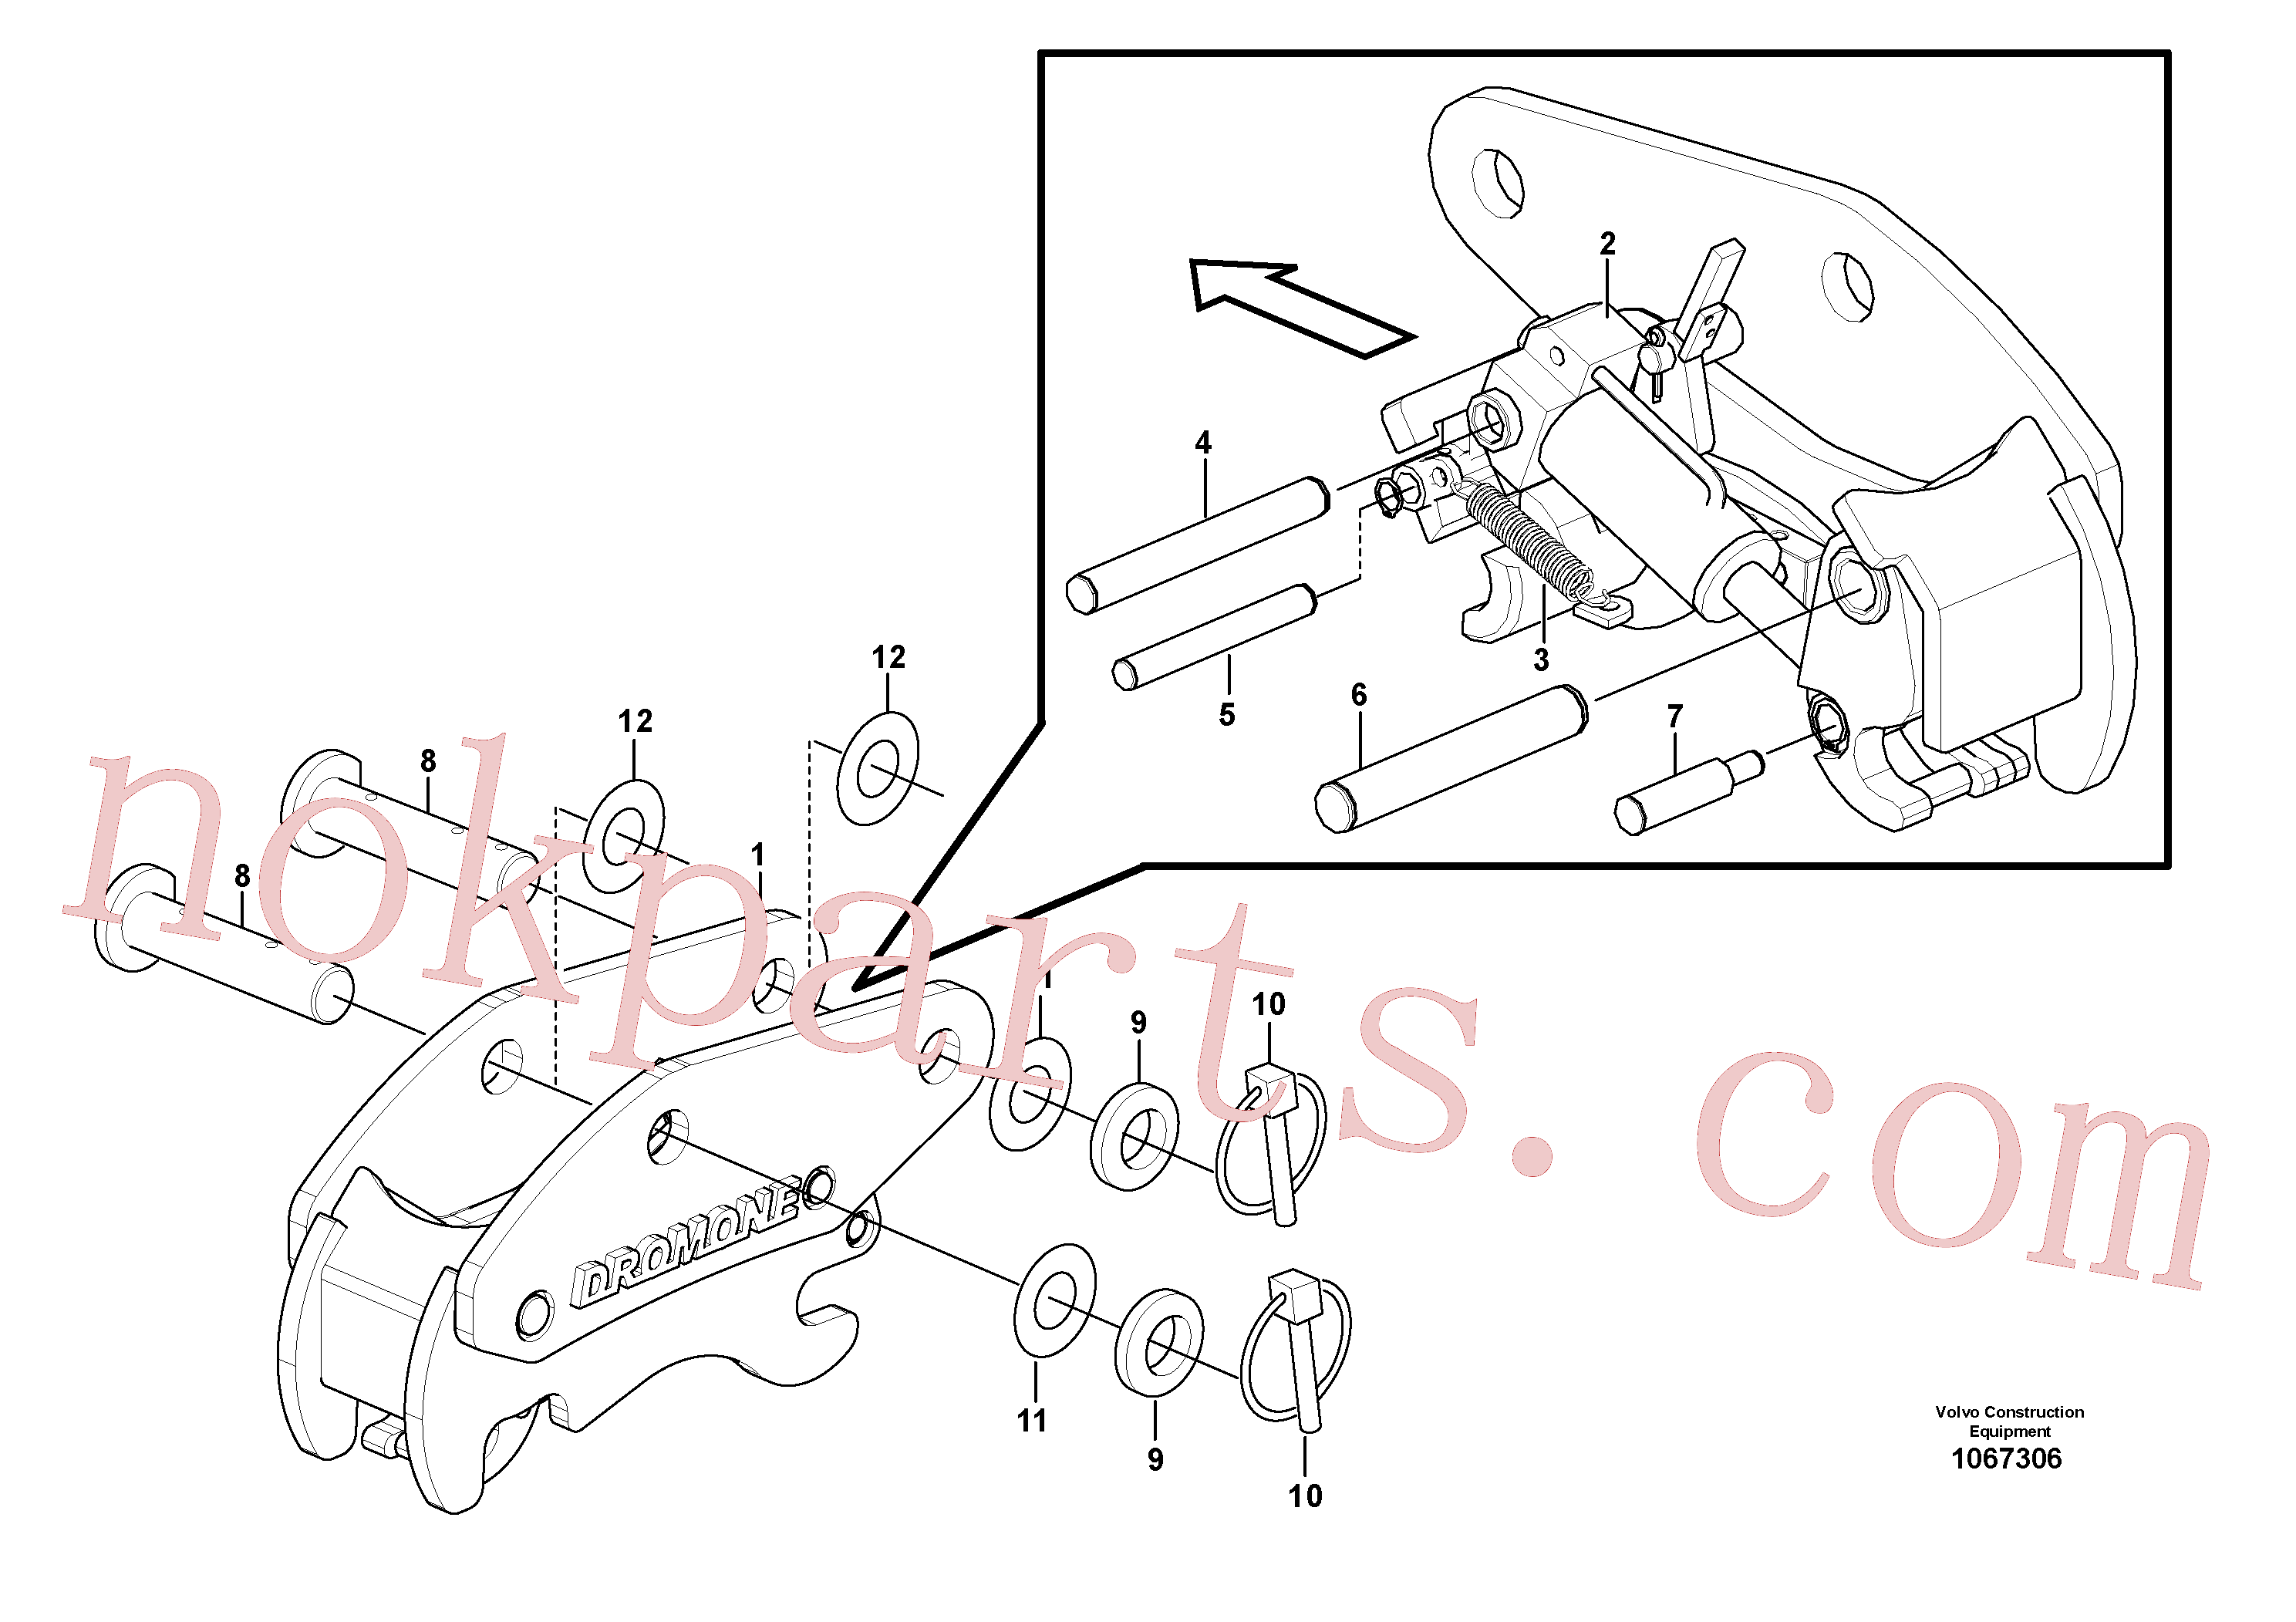 VOE17415395 for Volvo Hydraulic attachment bracket(1067306 assembly)